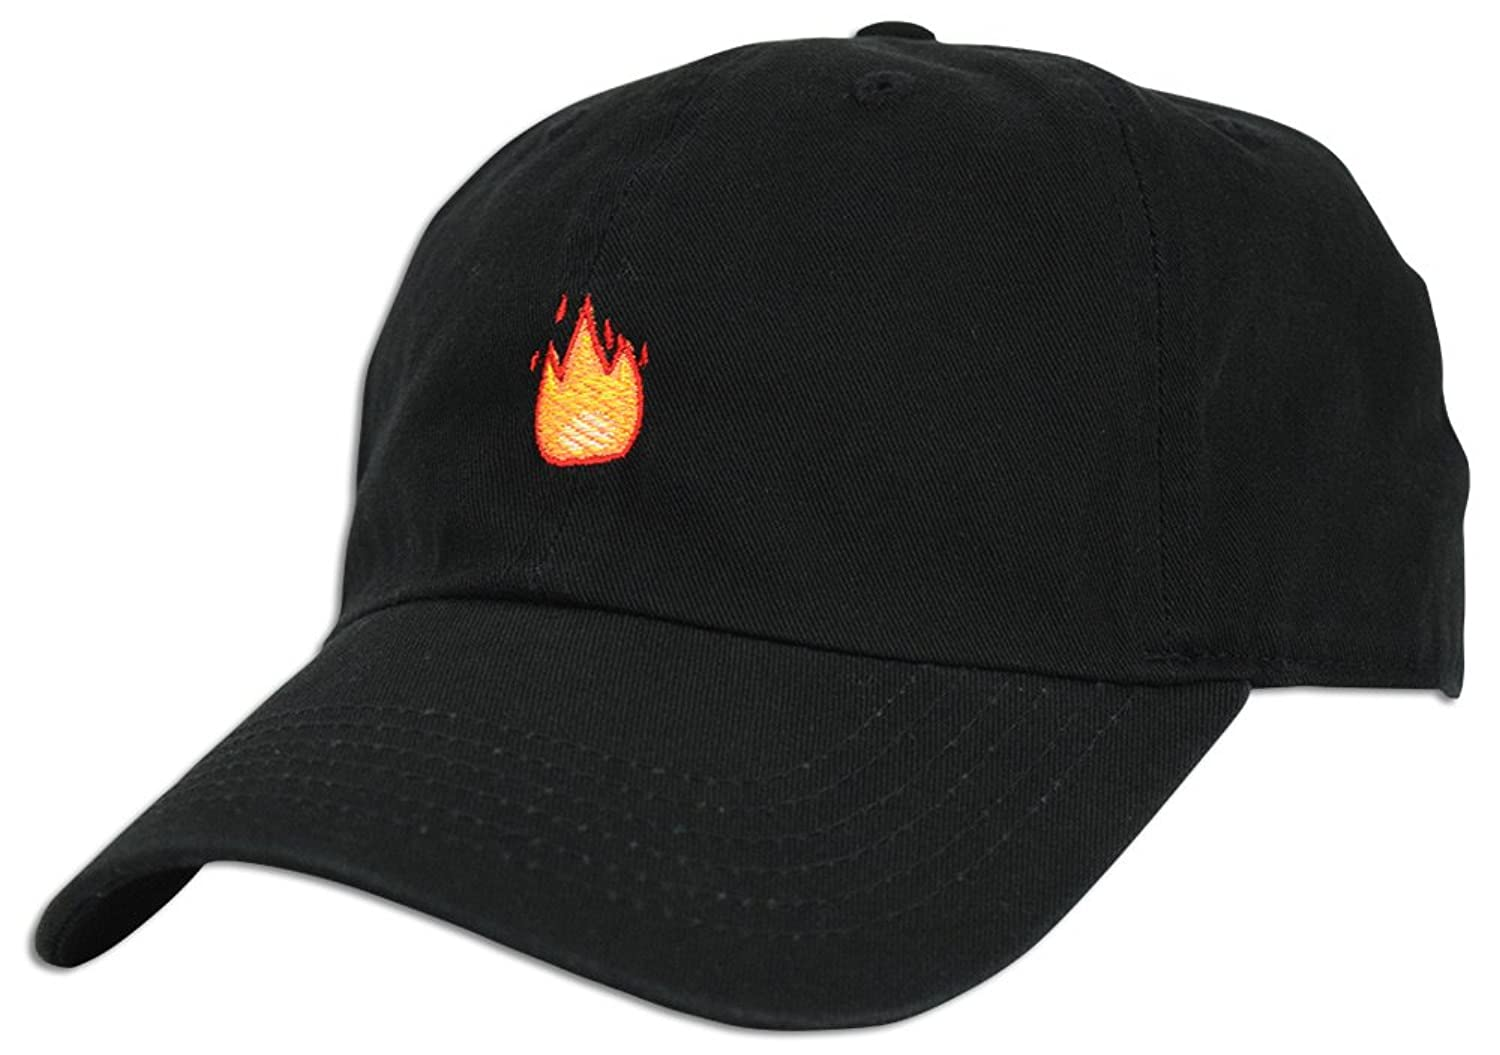 Fire Emoji Baseball Cap Curved Bill Dad Hat 100% Cotton Lit Hot Flame Solid NEW